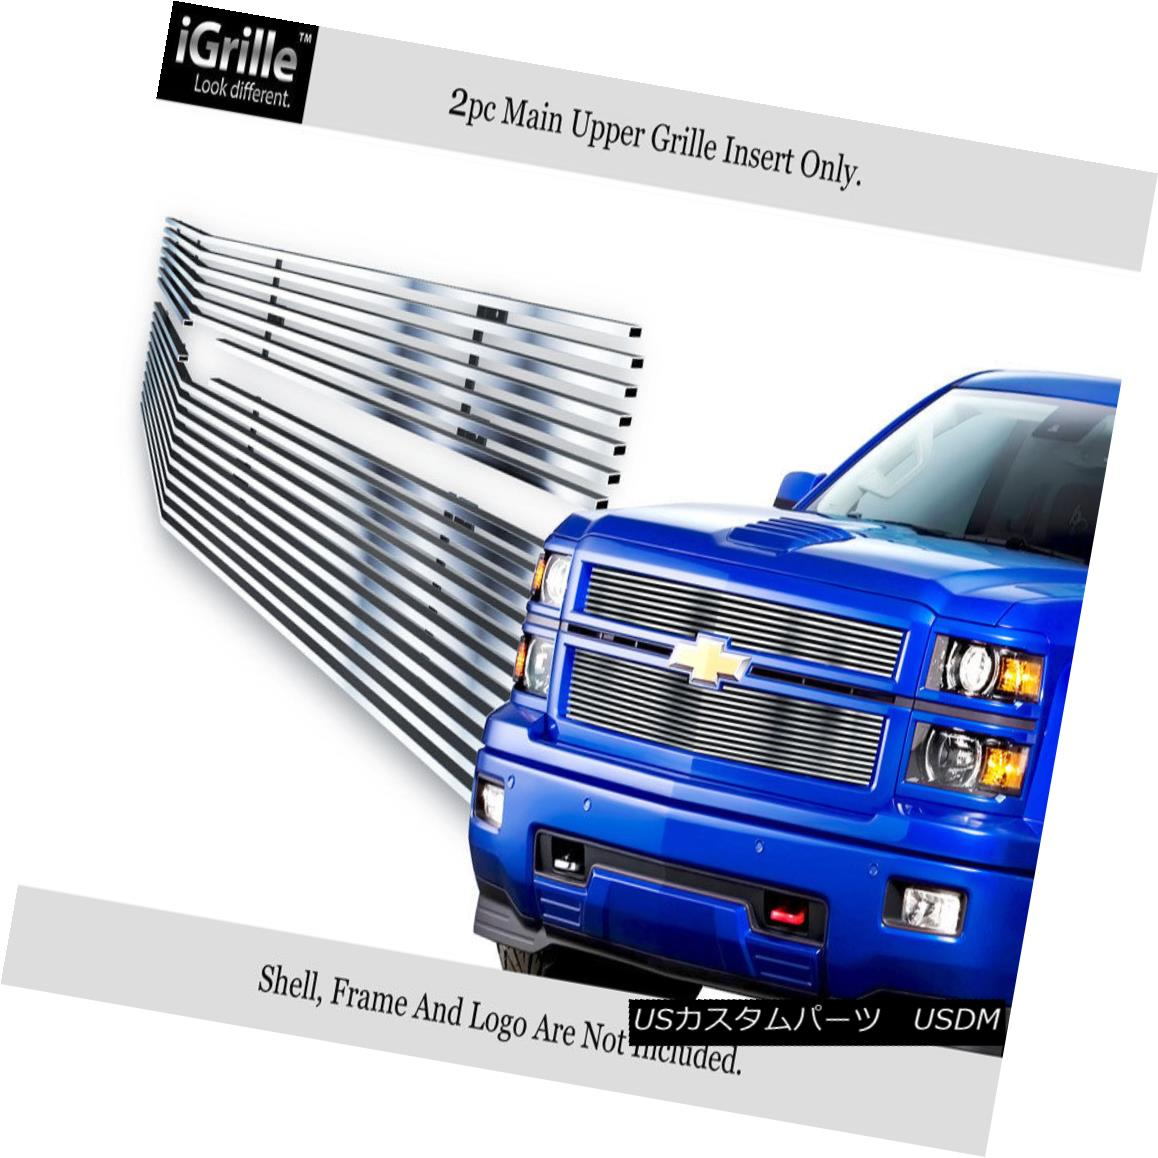 グリル For 2014-2015 Chevy Silverado 1500 Reg Model Stainless Steel Billet Grille 2014-2015 Chevy Silverado 1500 Regモデルステンレス鋼ビレットグリル